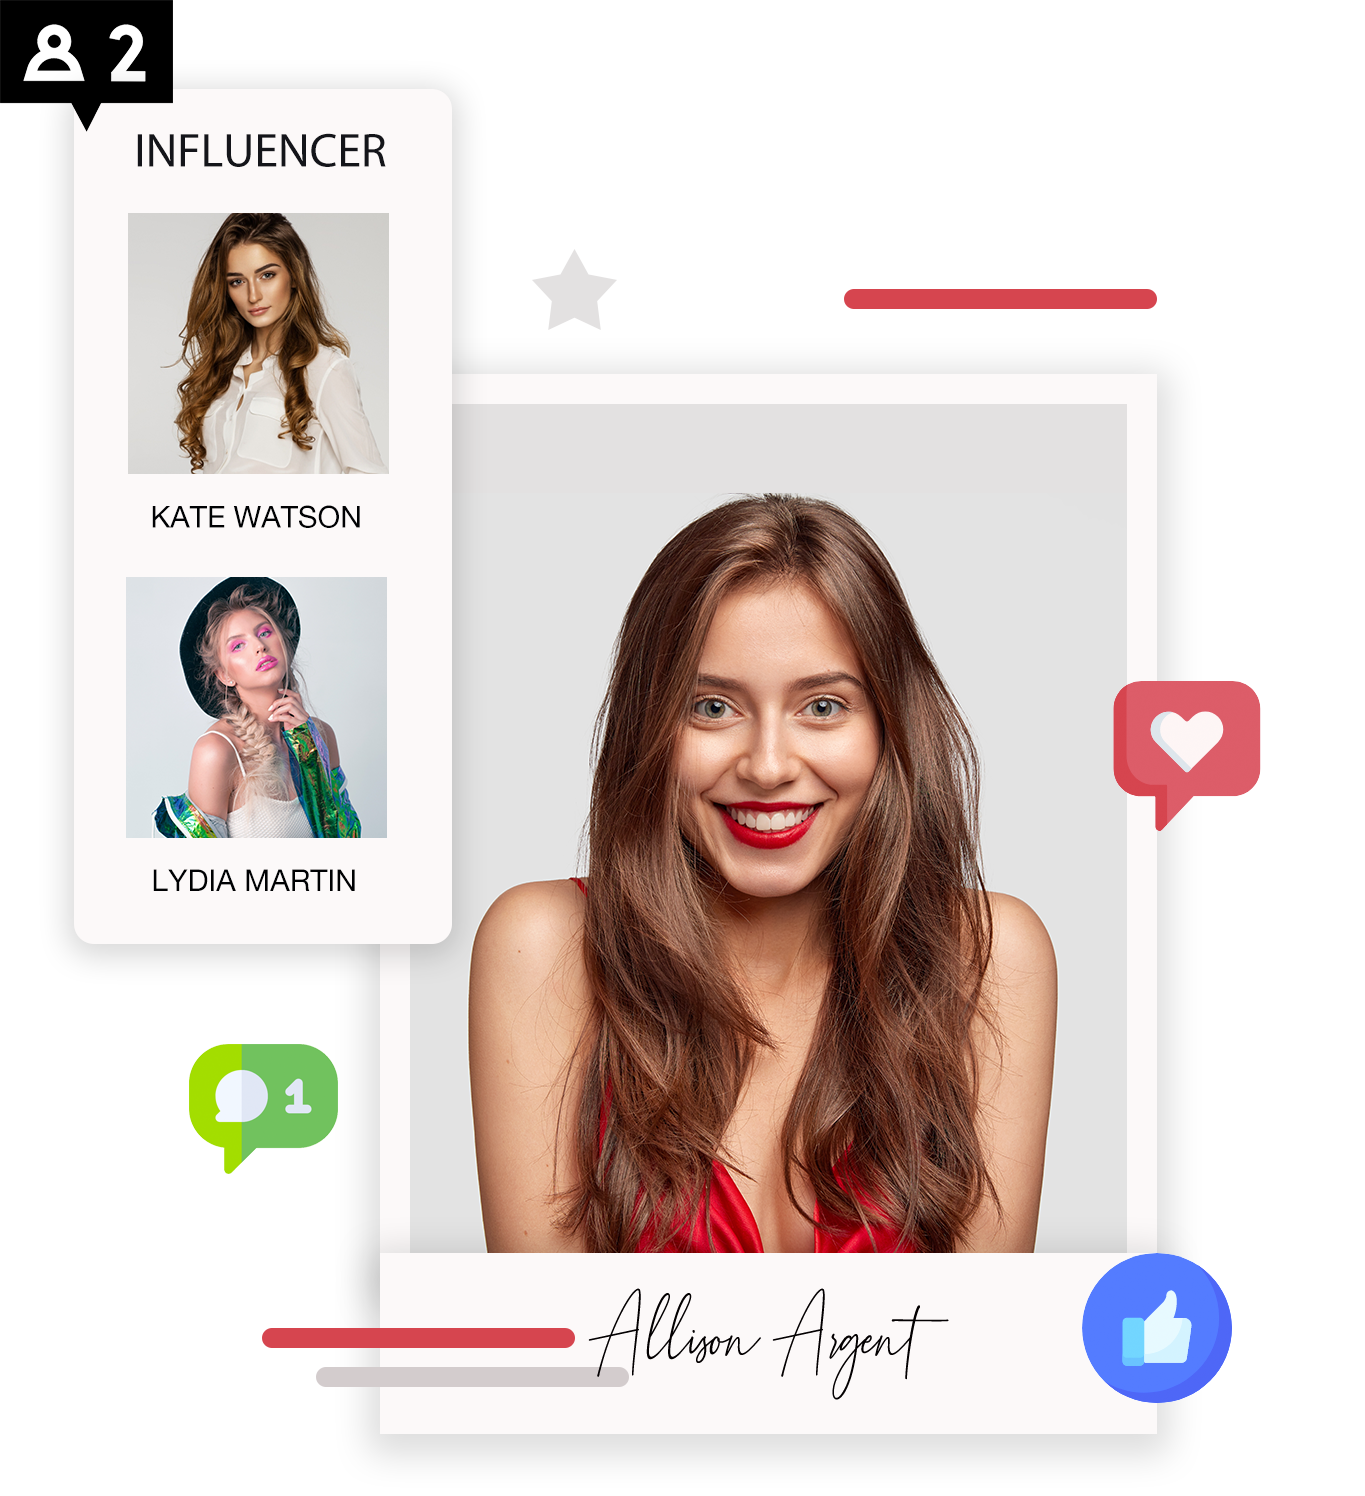 Builderfly helps you connect with influencers who can potentially boost your sales by recommending your products to the target audience.